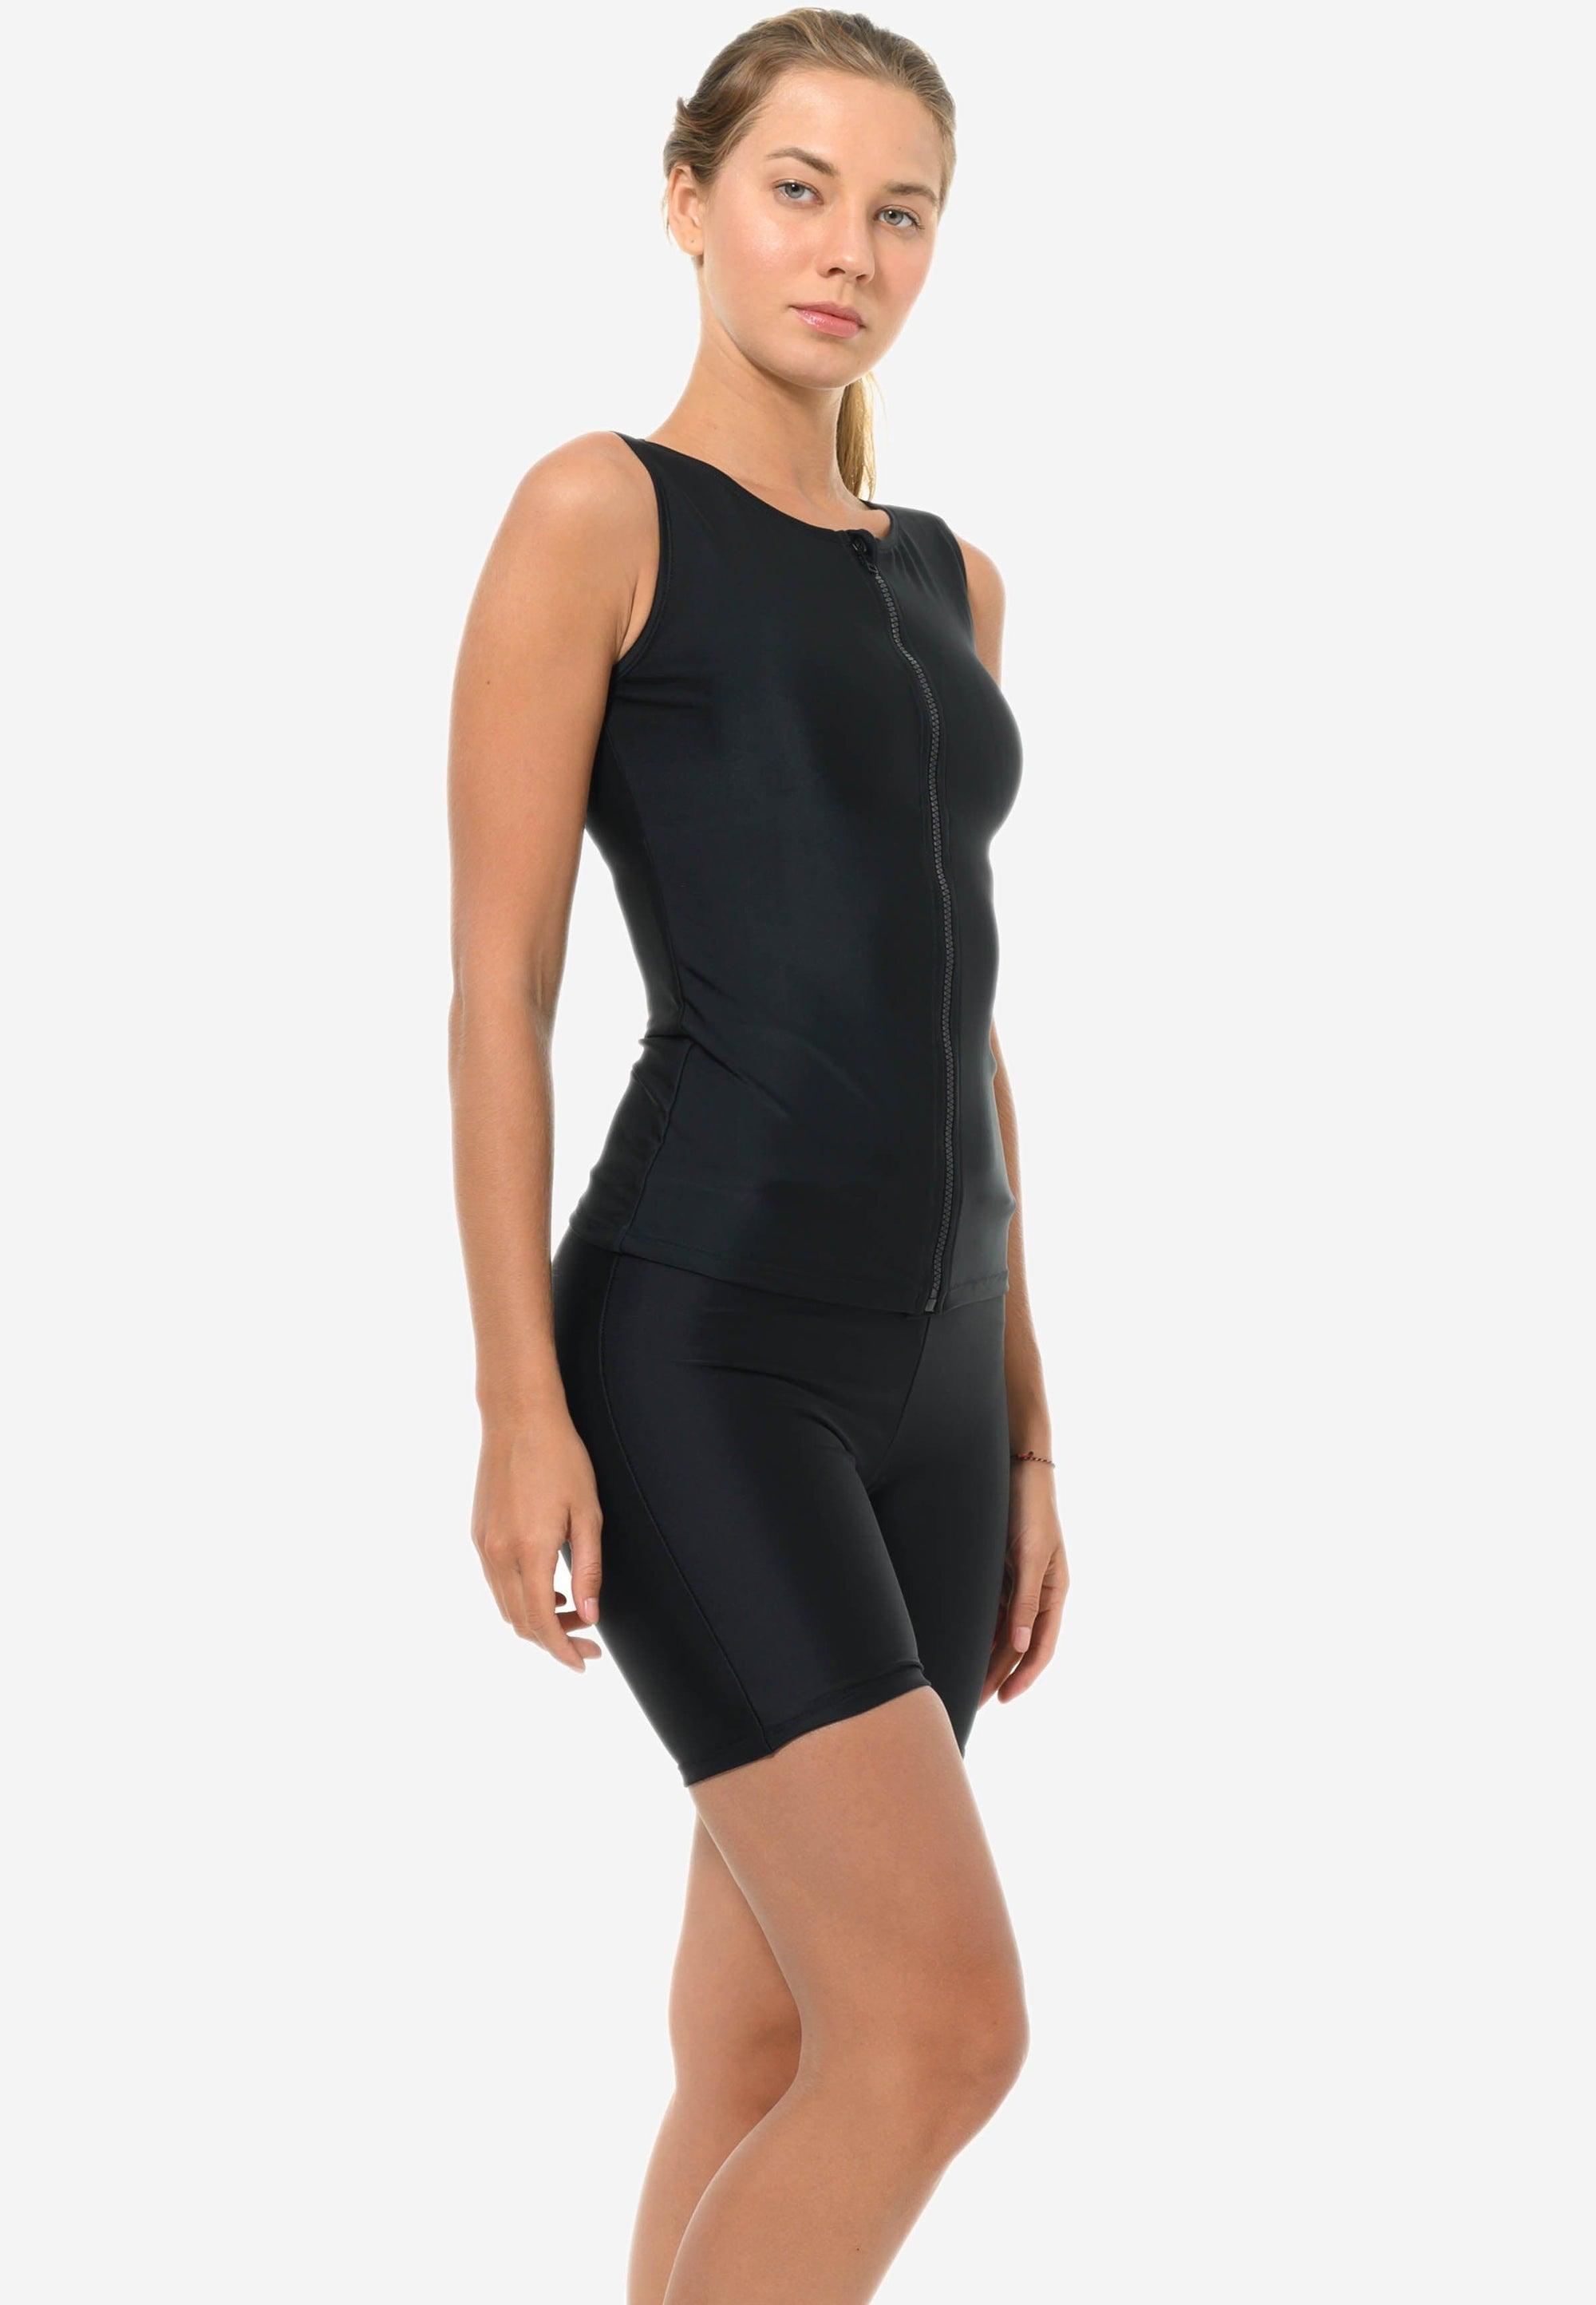 Tankini One-piece in Black (S - XL)